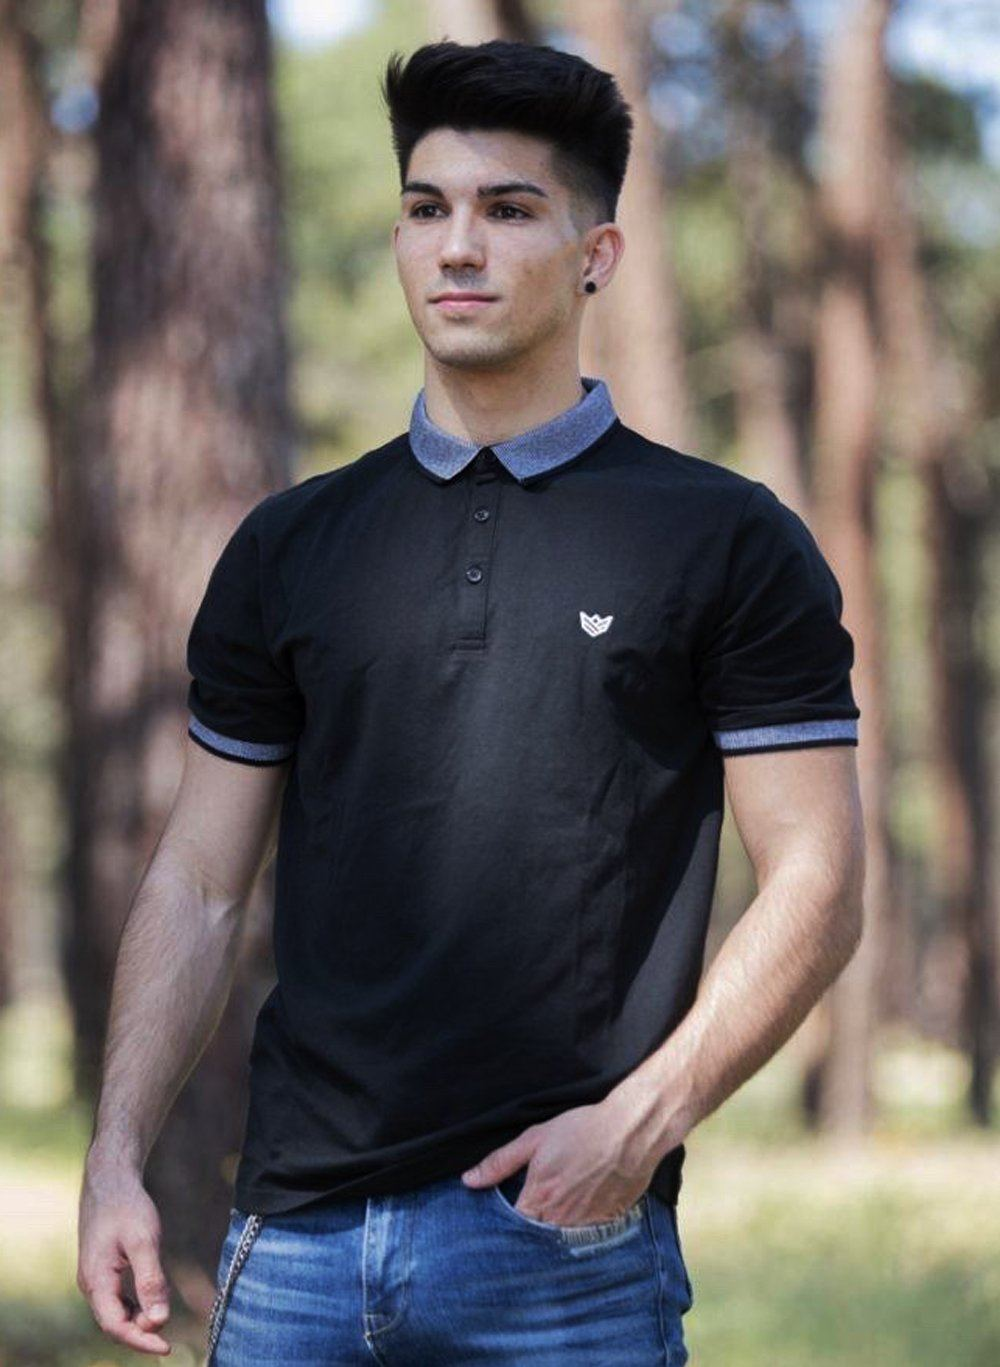 Polo Aesthetic - 2 Colores Disponibles Camiseta de Hombre Rise&Shine Mindbody Industries